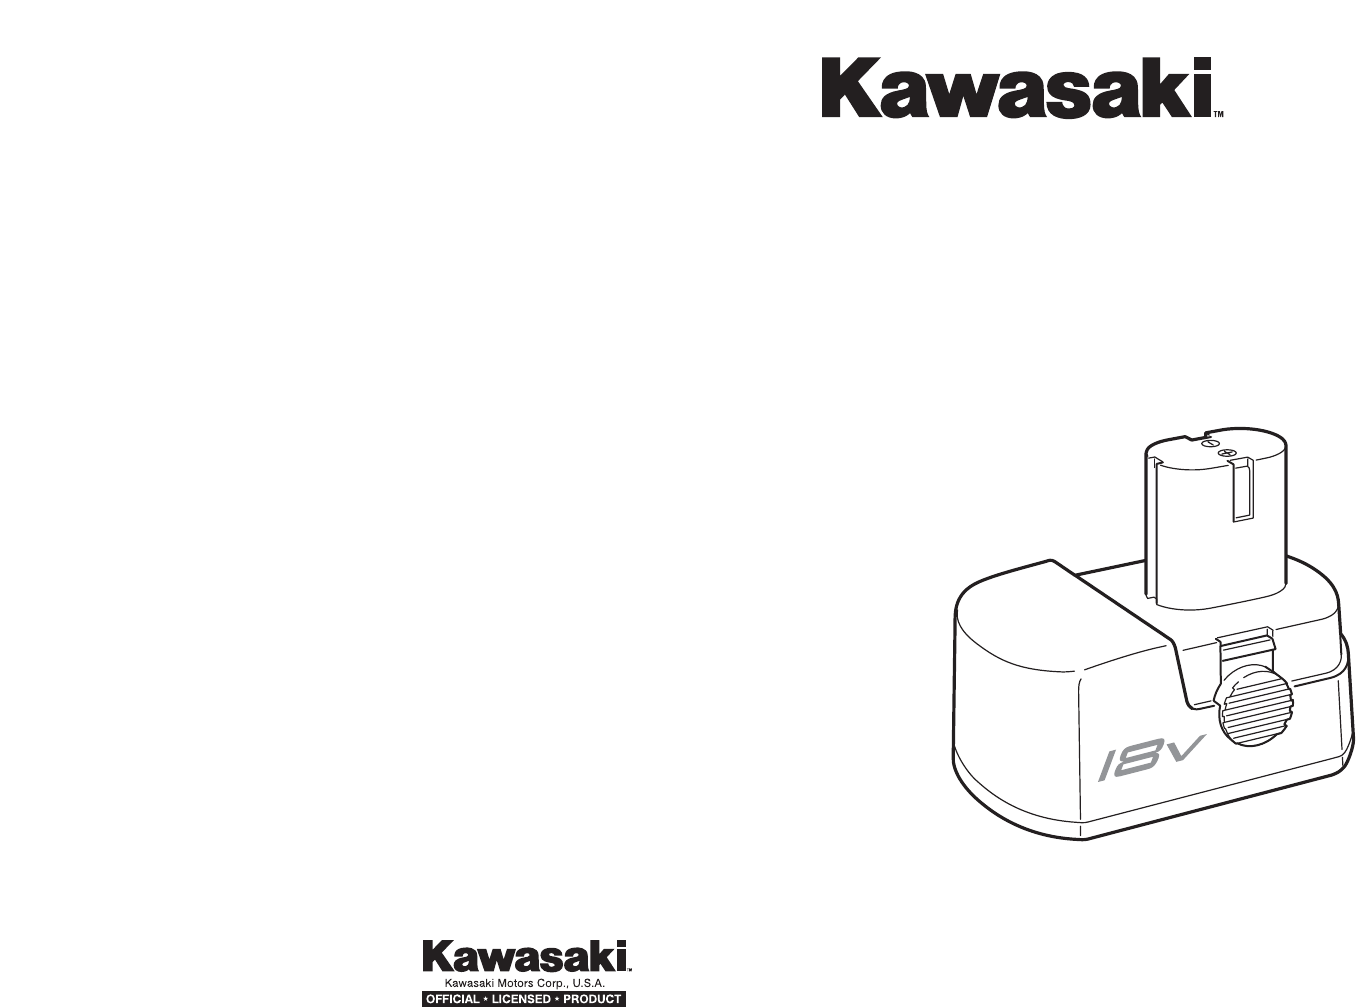 Page 34 of Kawasaki Drill 840108 User Guide